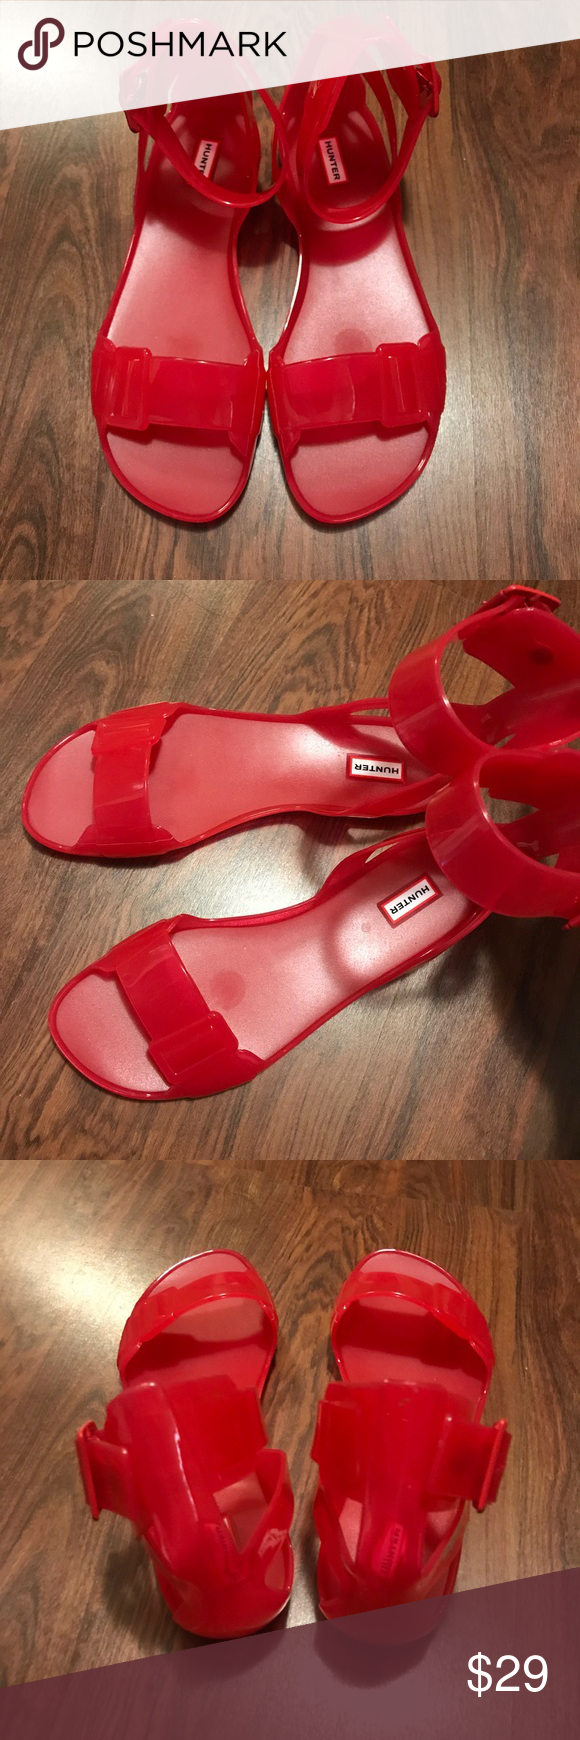 30c41ceac88d Hunter Original Open Toe Jelly Sandal Hunter takes the rain or shine style  you love into must-have jelly sandals. Open toe  buckled ankle strap.